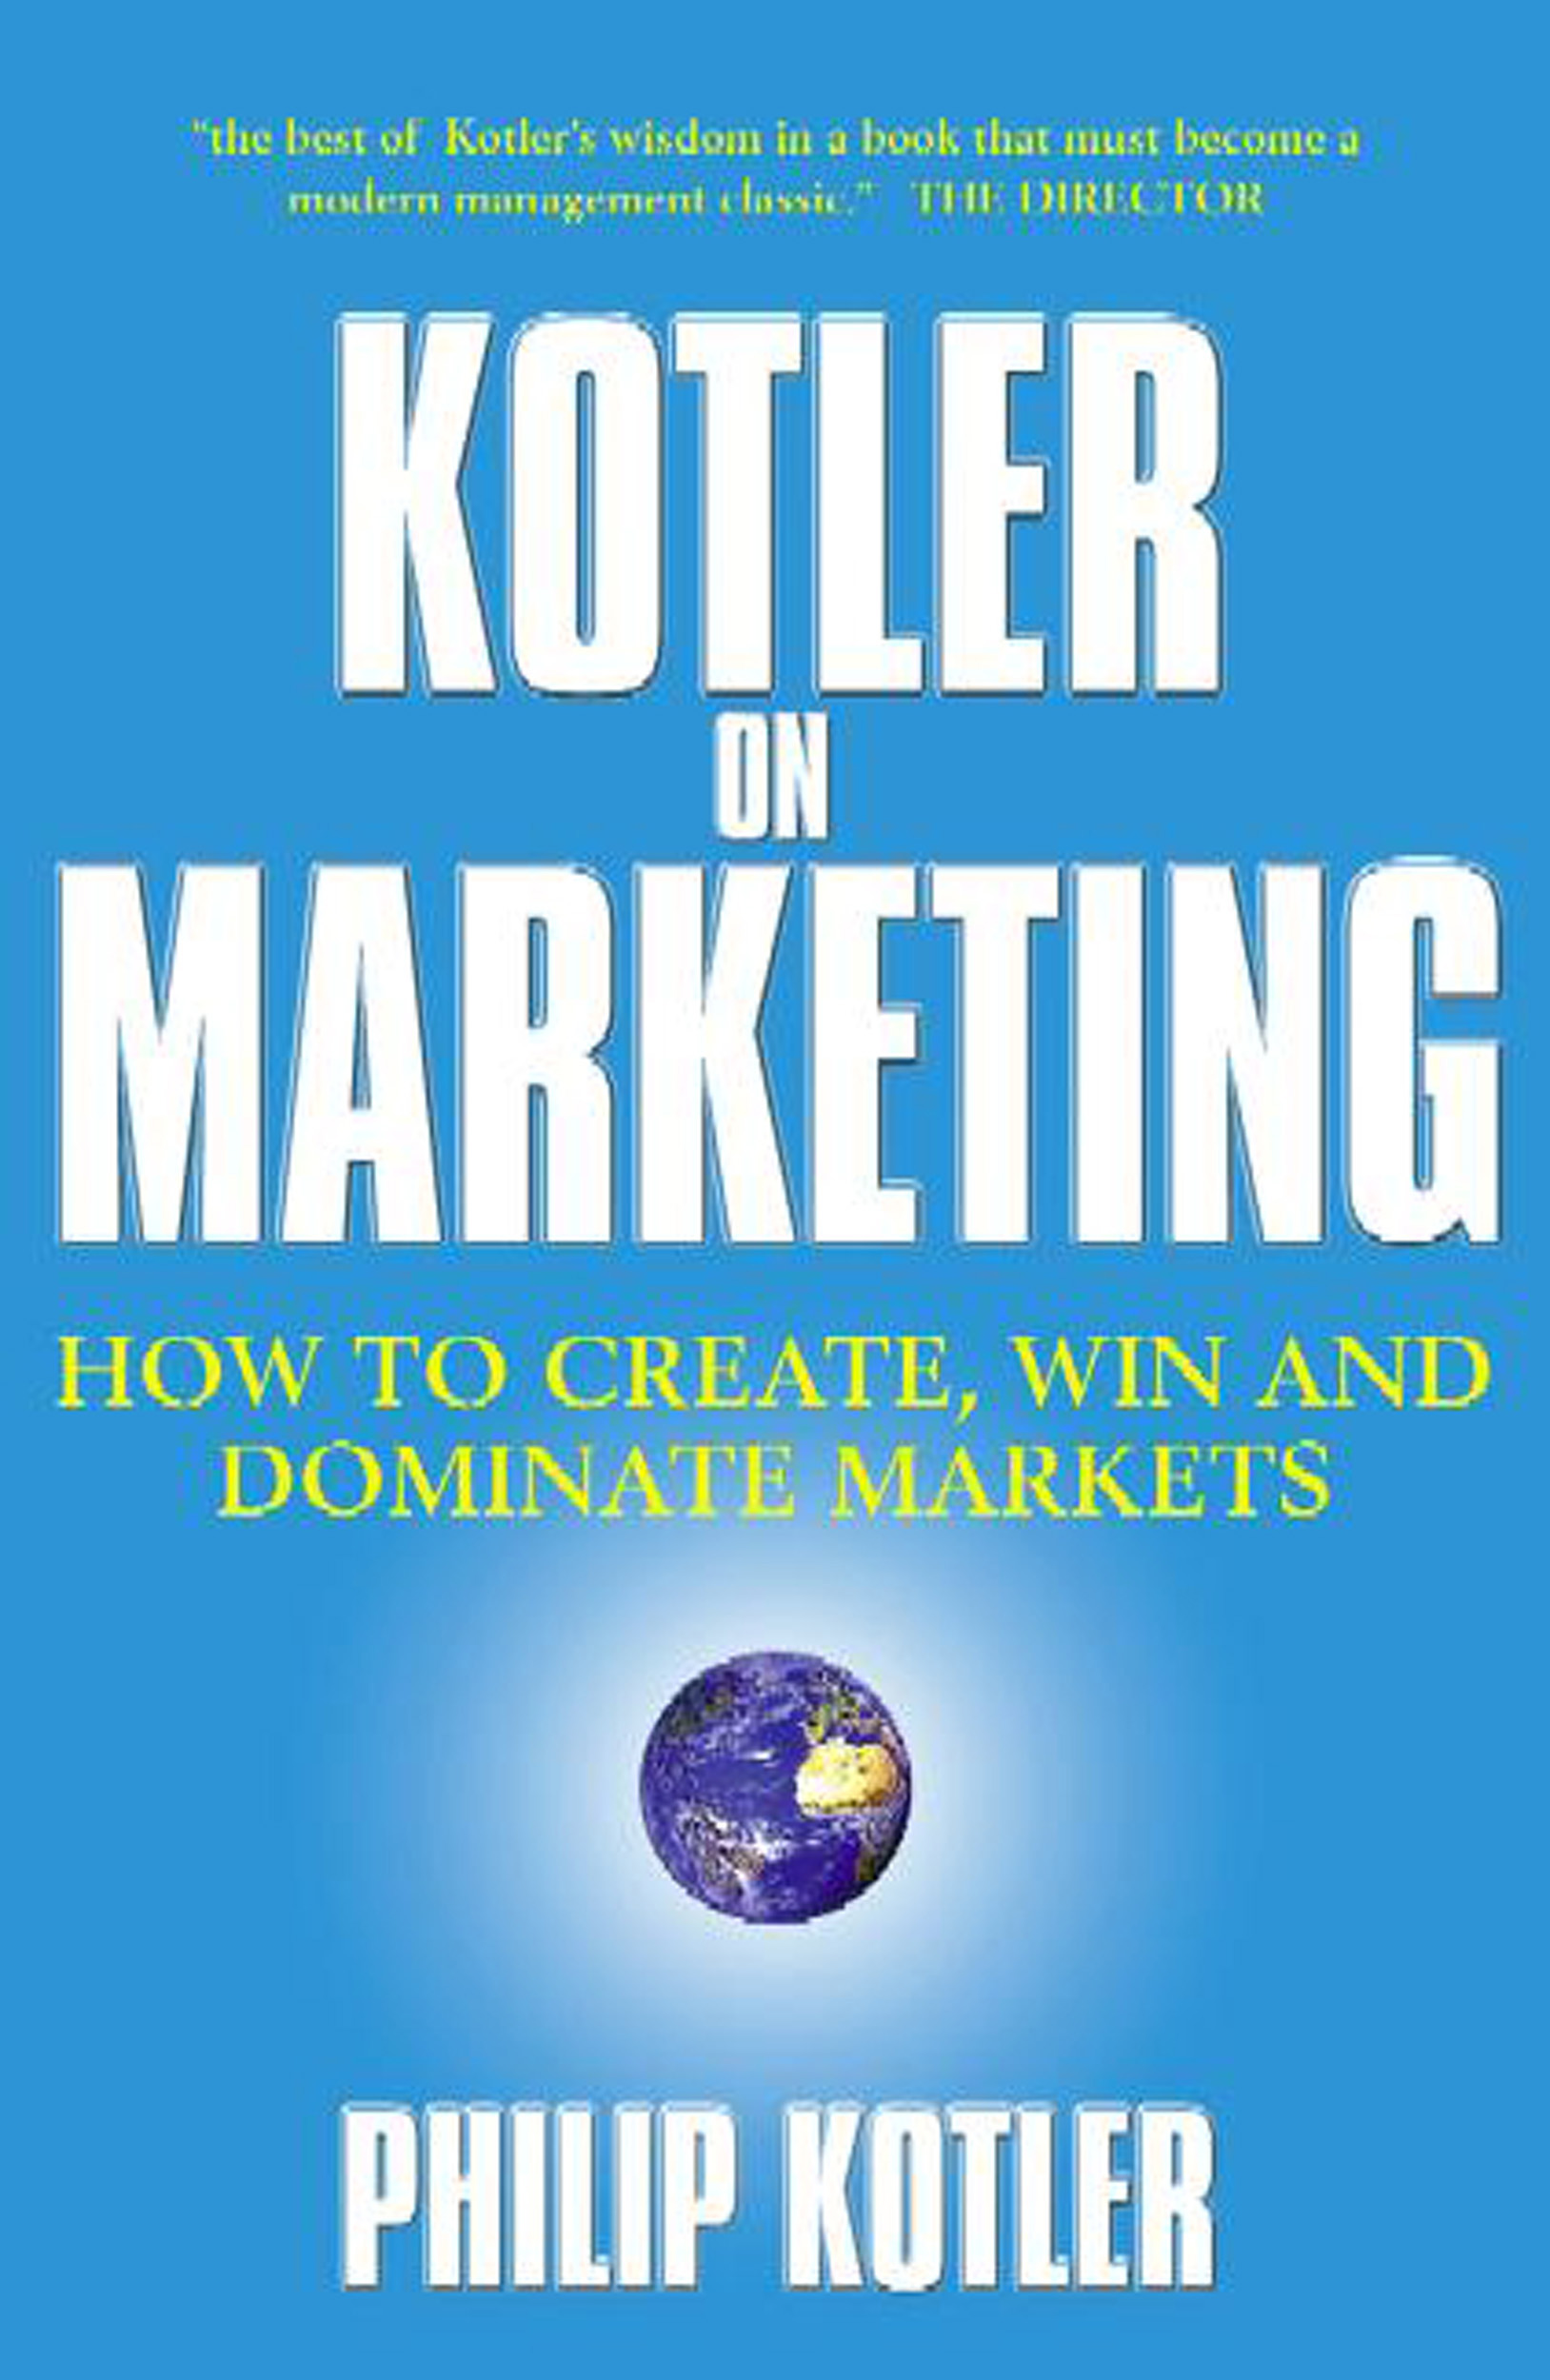 Kotler on marketing ebook by philip kotler official publisher page book cover image jpg kotler on marketing ebook 9781471109560 fandeluxe Choice Image